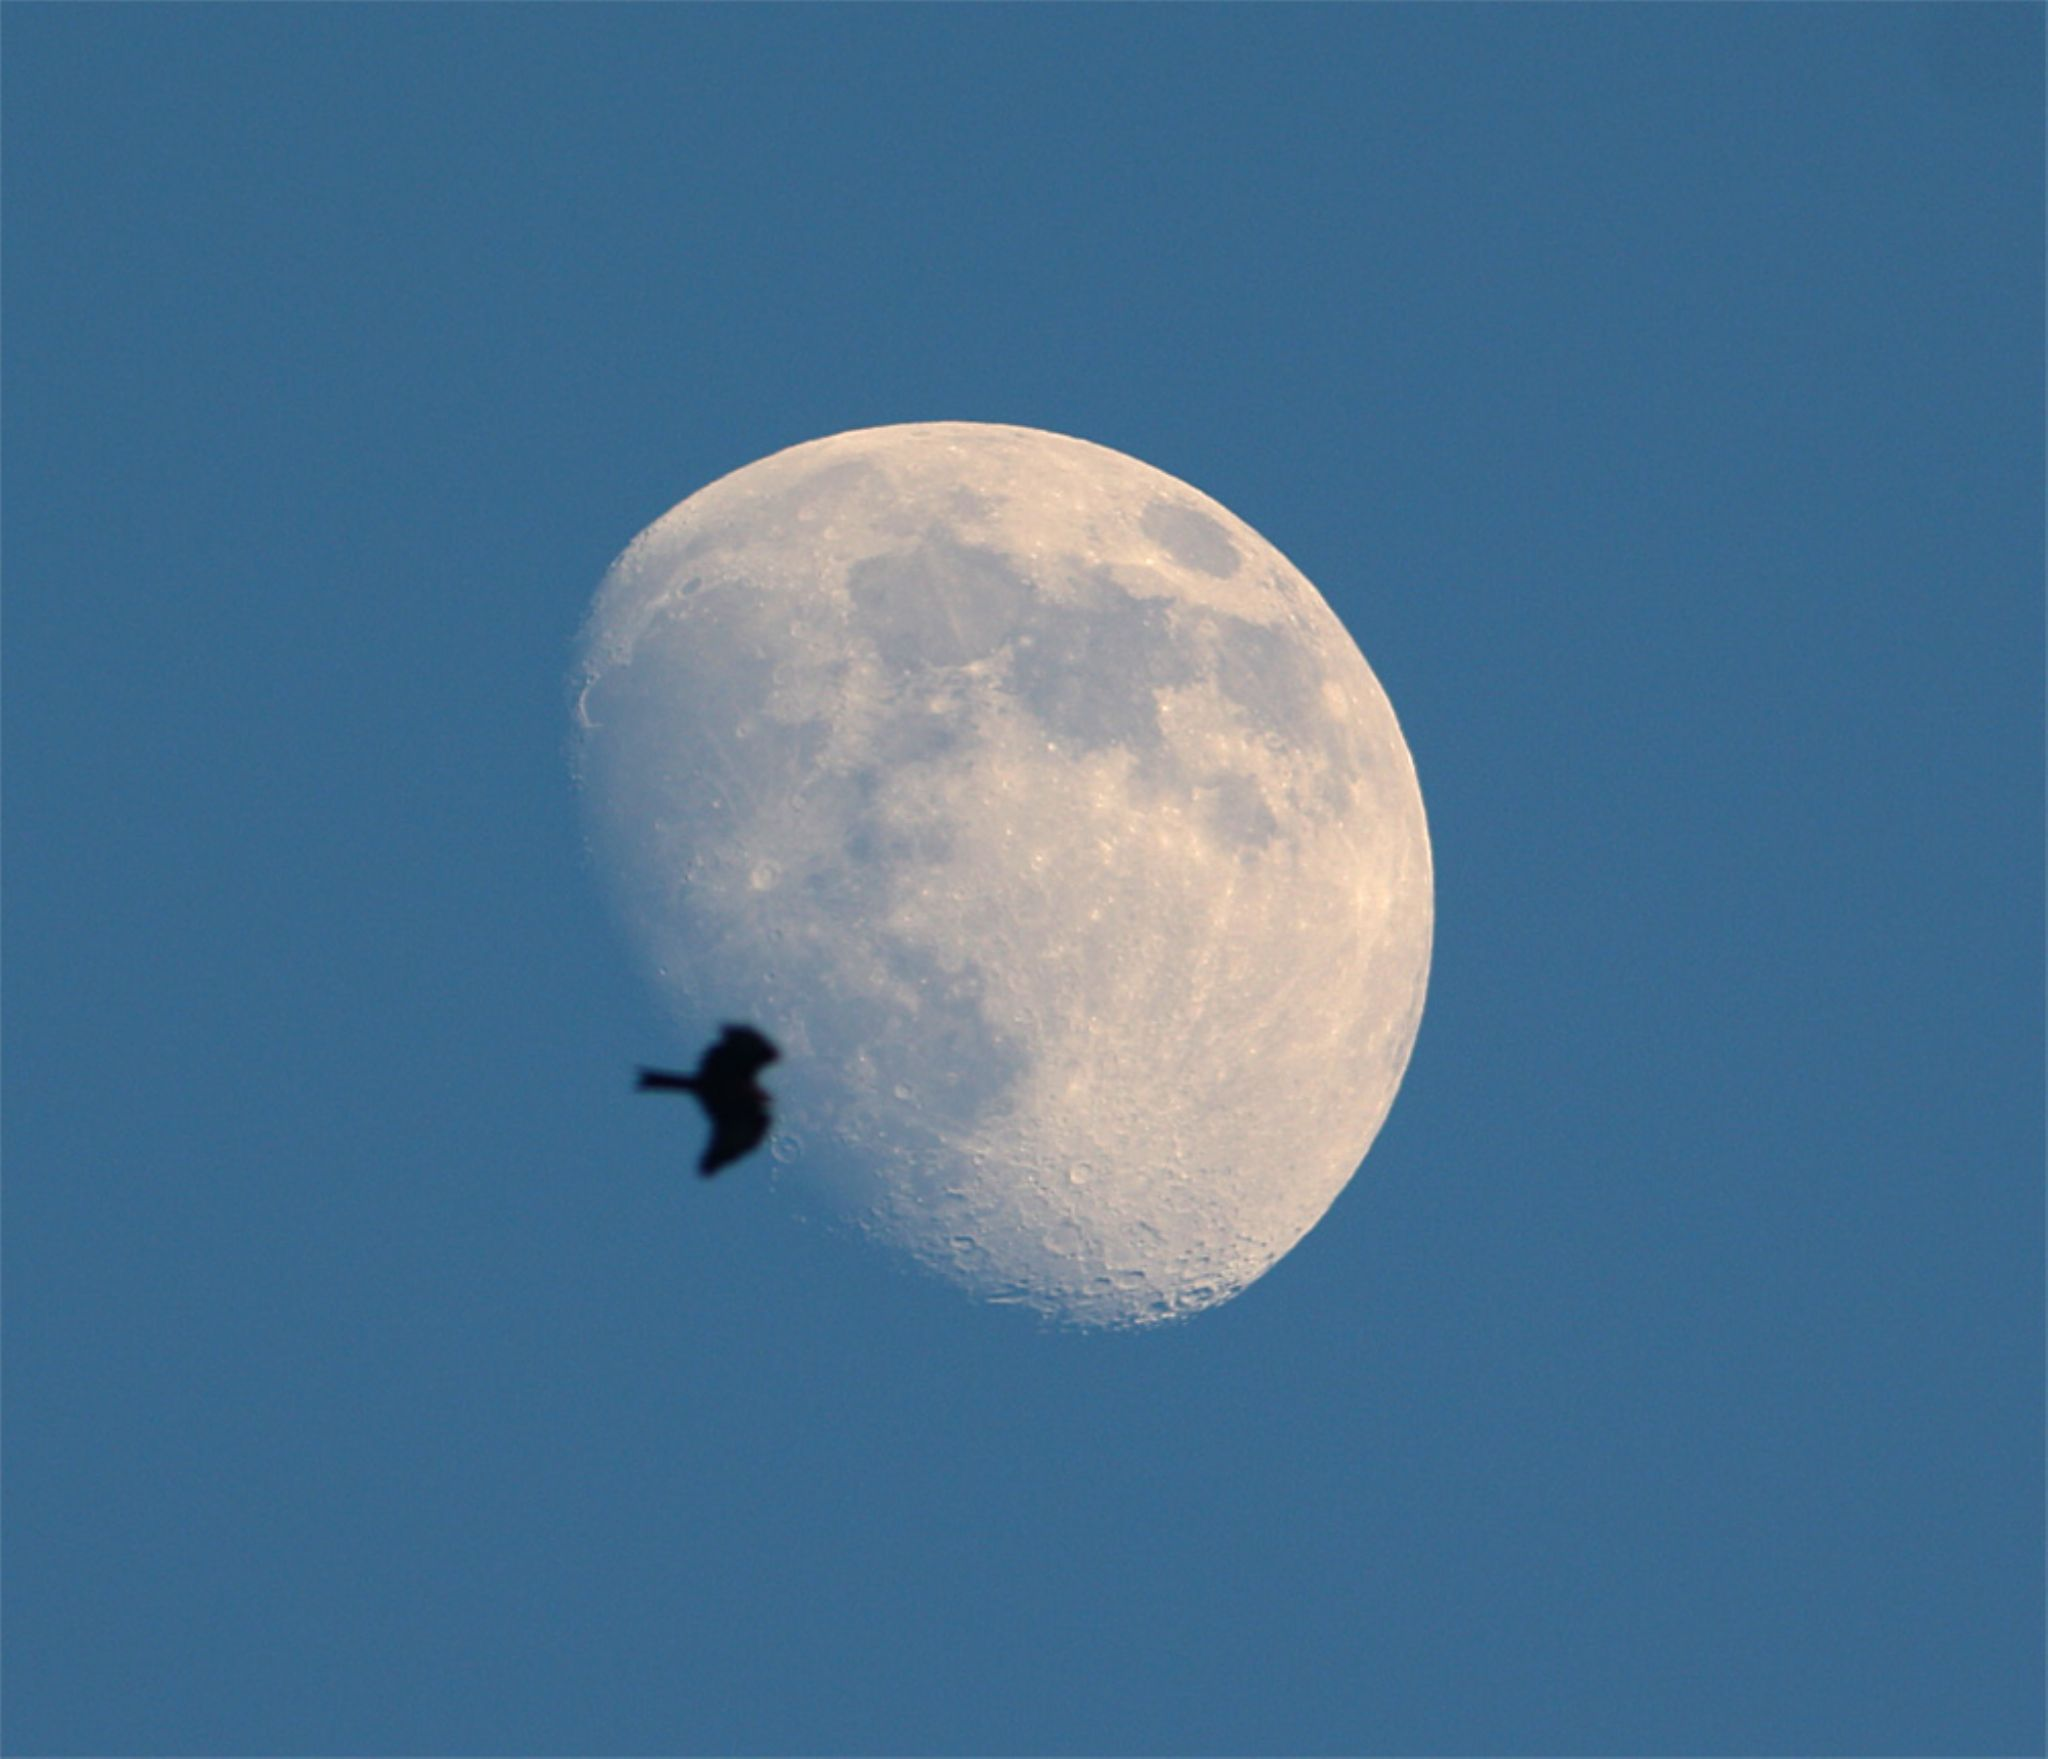 The Eagle on the Moon by tangyuiching